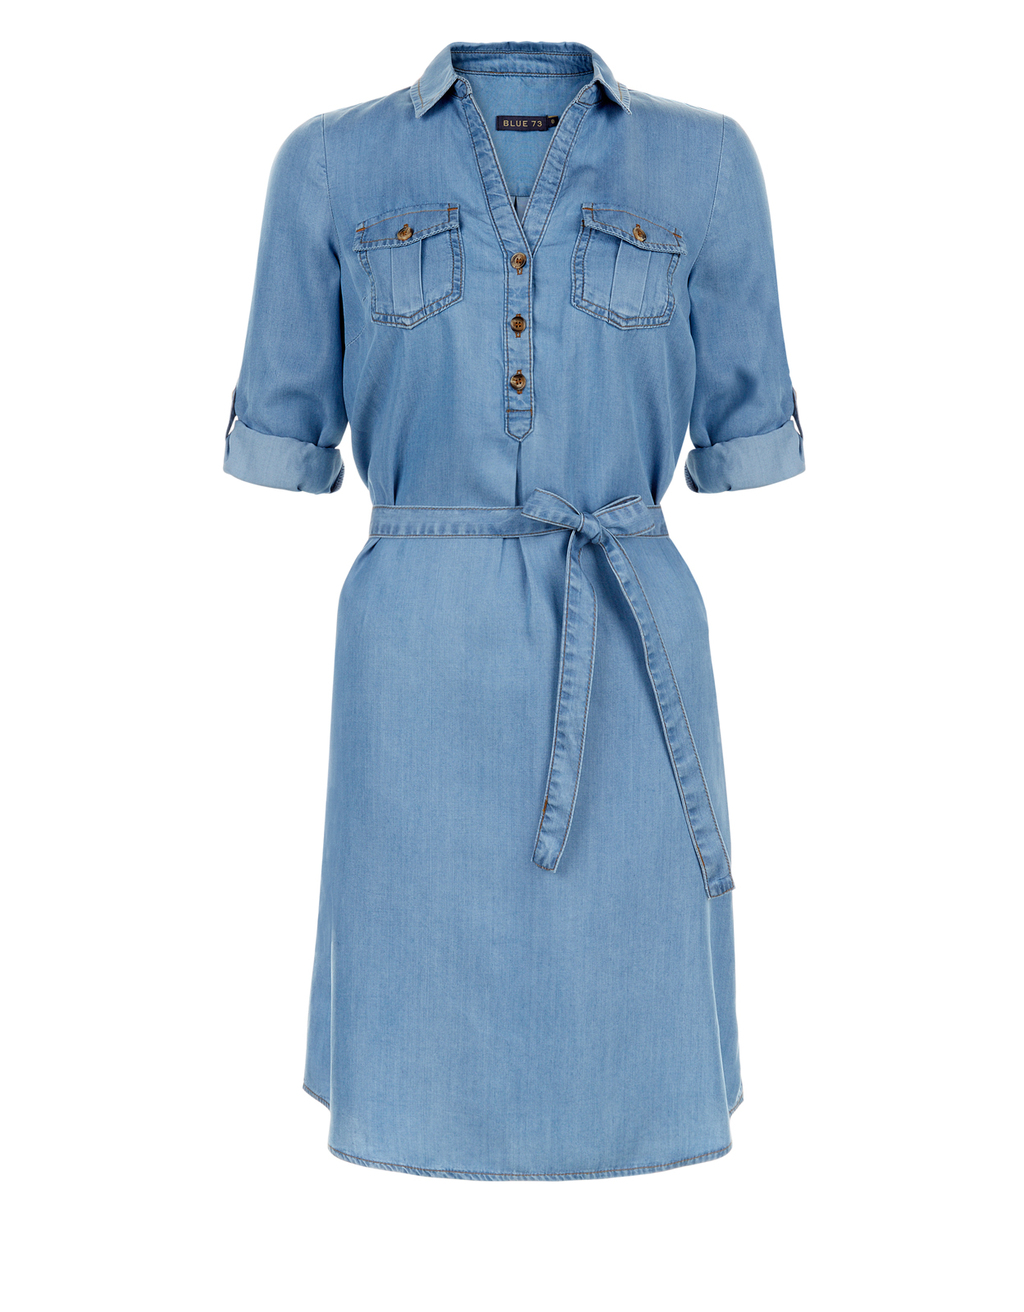 Callie Tencel Shirt Dress - style: shirt; neckline: shirt collar/peter pan/zip with opening; pattern: plain; waist detail: belted waist/tie at waist/drawstring; predominant colour: denim; occasions: casual; length: just above the knee; fit: body skimming; fibres: viscose/rayon - 100%; sleeve length: short sleeve; sleeve style: standard; texture group: denim; pattern type: fabric; season: s/s 2016; wardrobe: basic